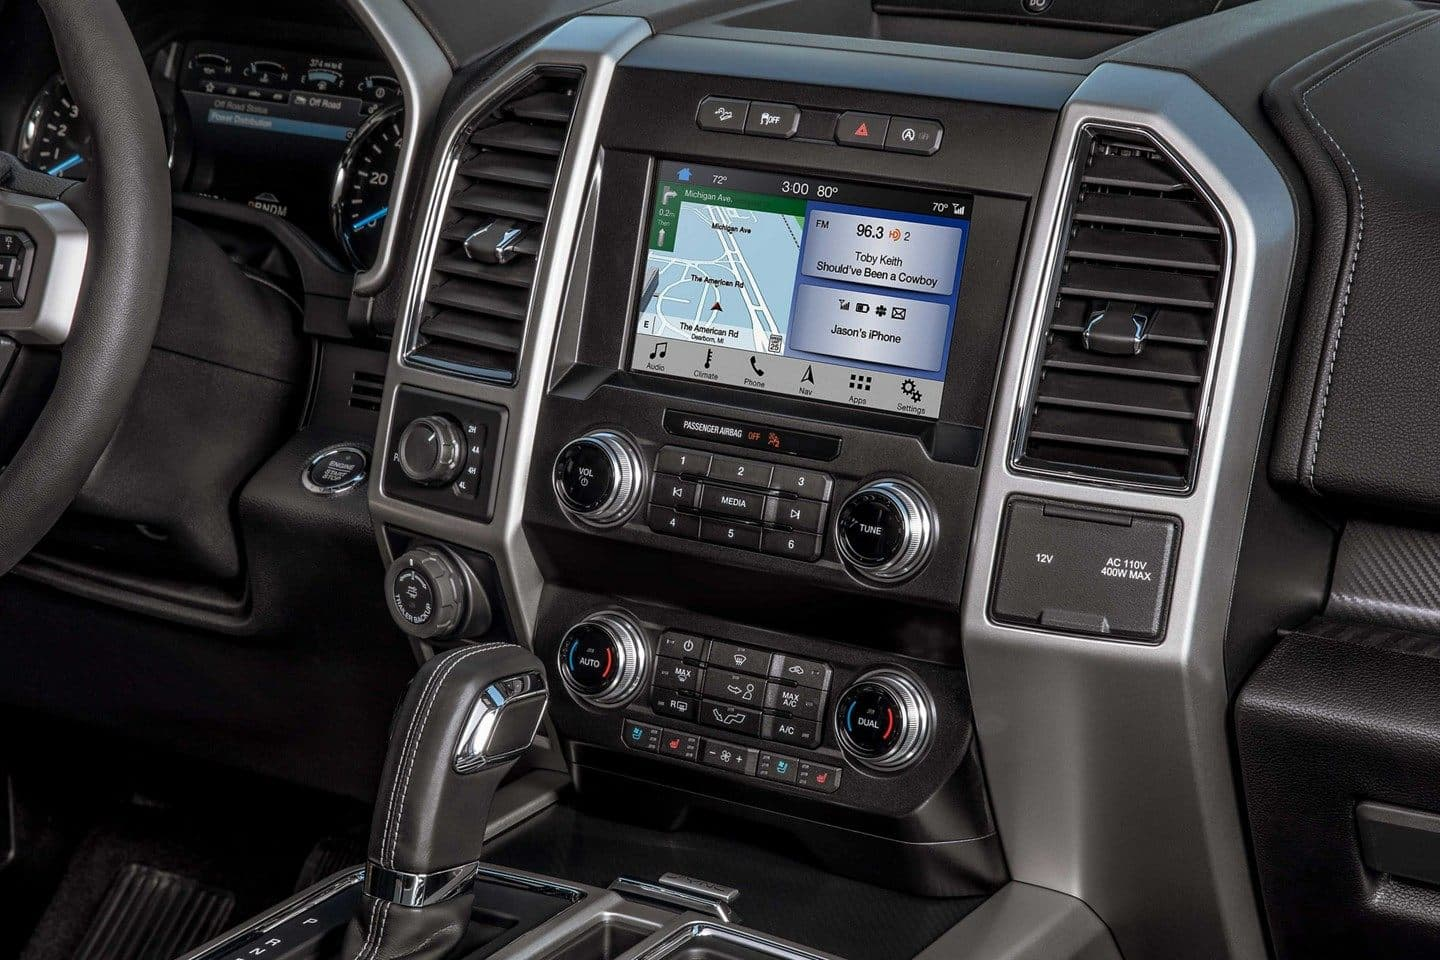 Ford F-150 Interior Dashboard